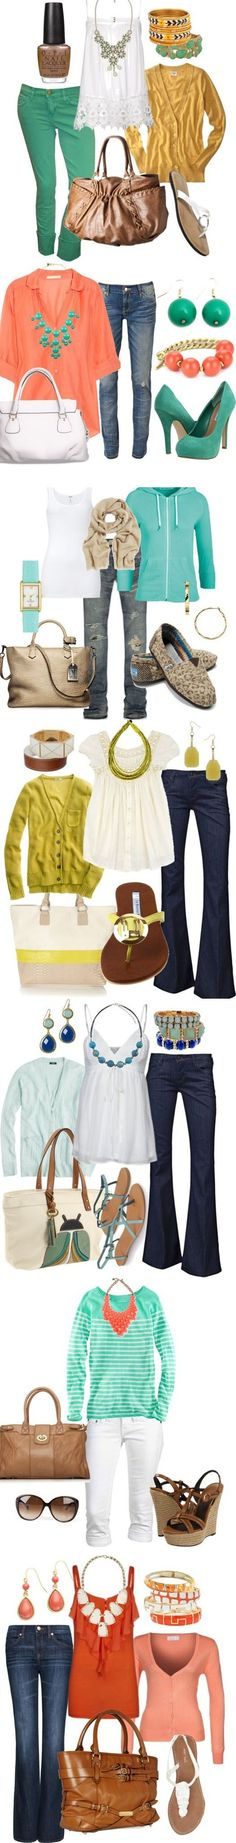 fashion style , bag , wear , clothing , dress , watch , glasses , pands , necklace